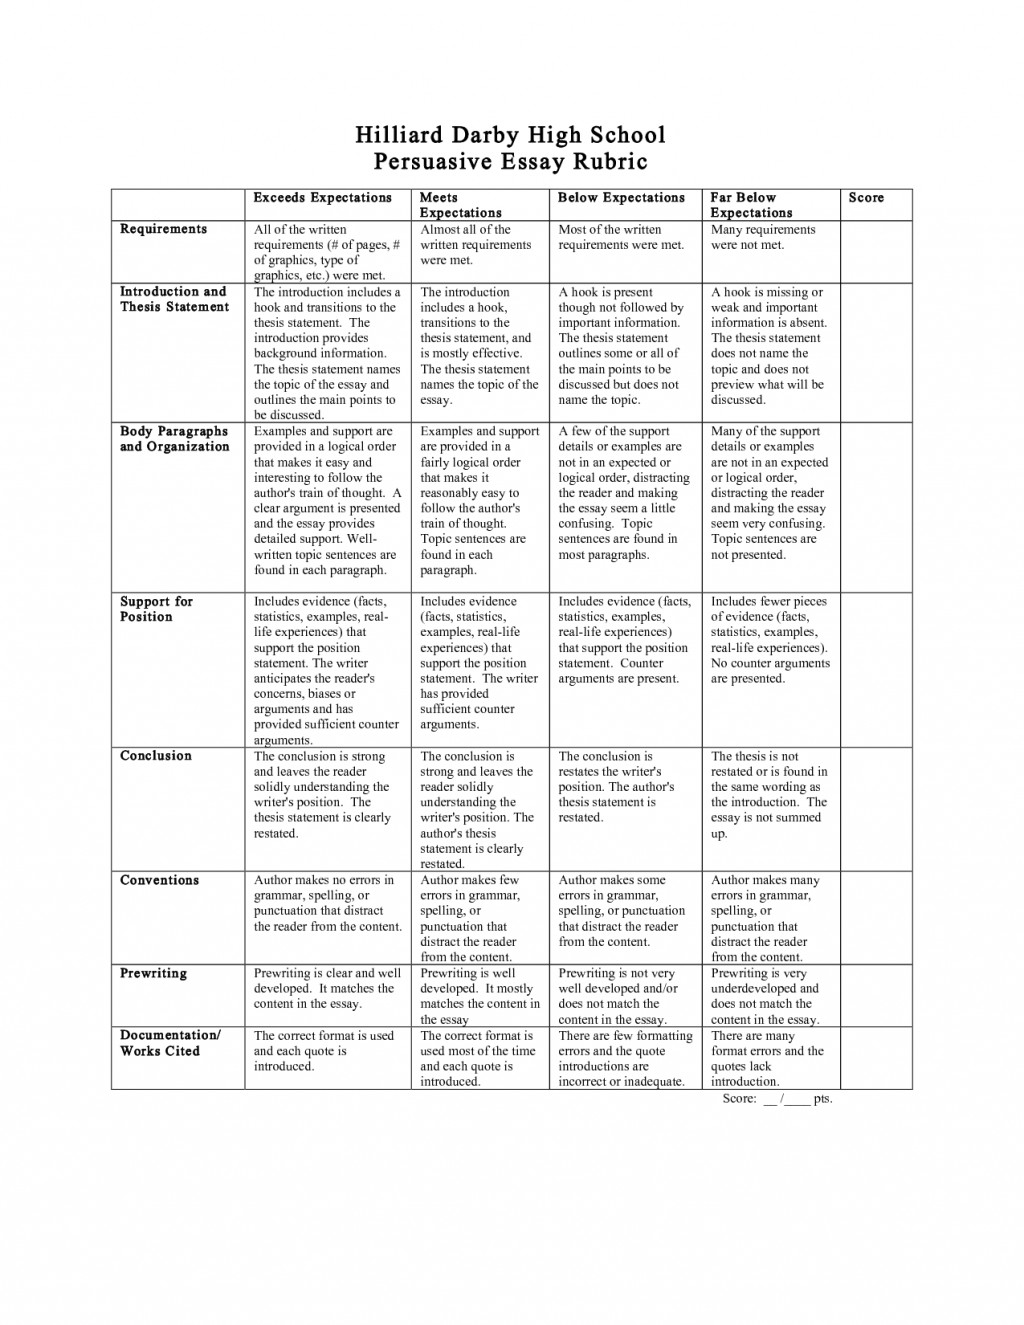 015 Persuasive Essay Rubric High School 438153 Argumentative Research Outstanding Paper Large